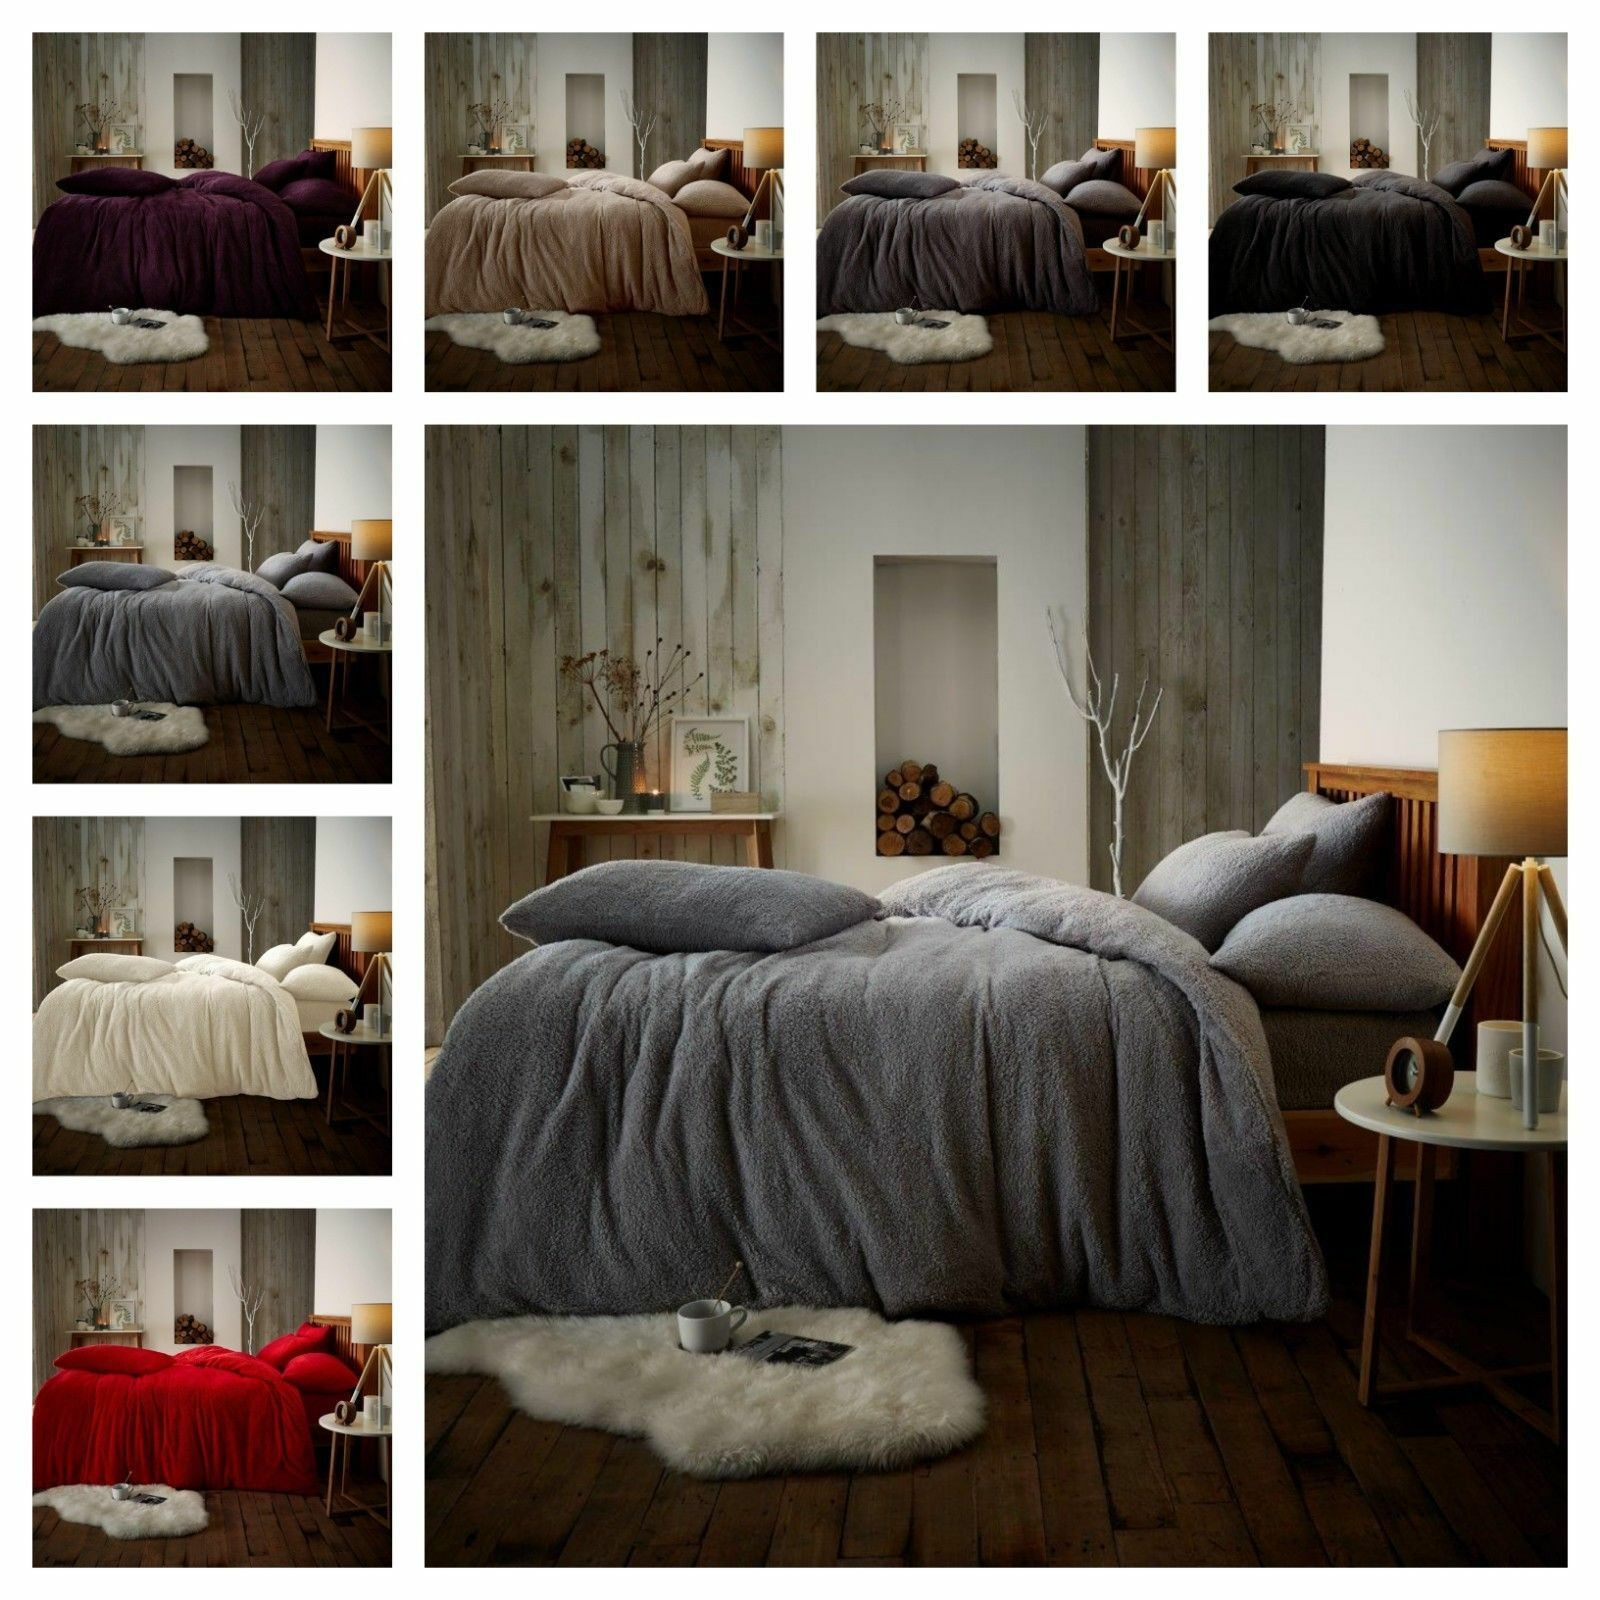 Beautiful Teddy Bear Bedding Duvet Set and Sheet Complete Set cheapest on